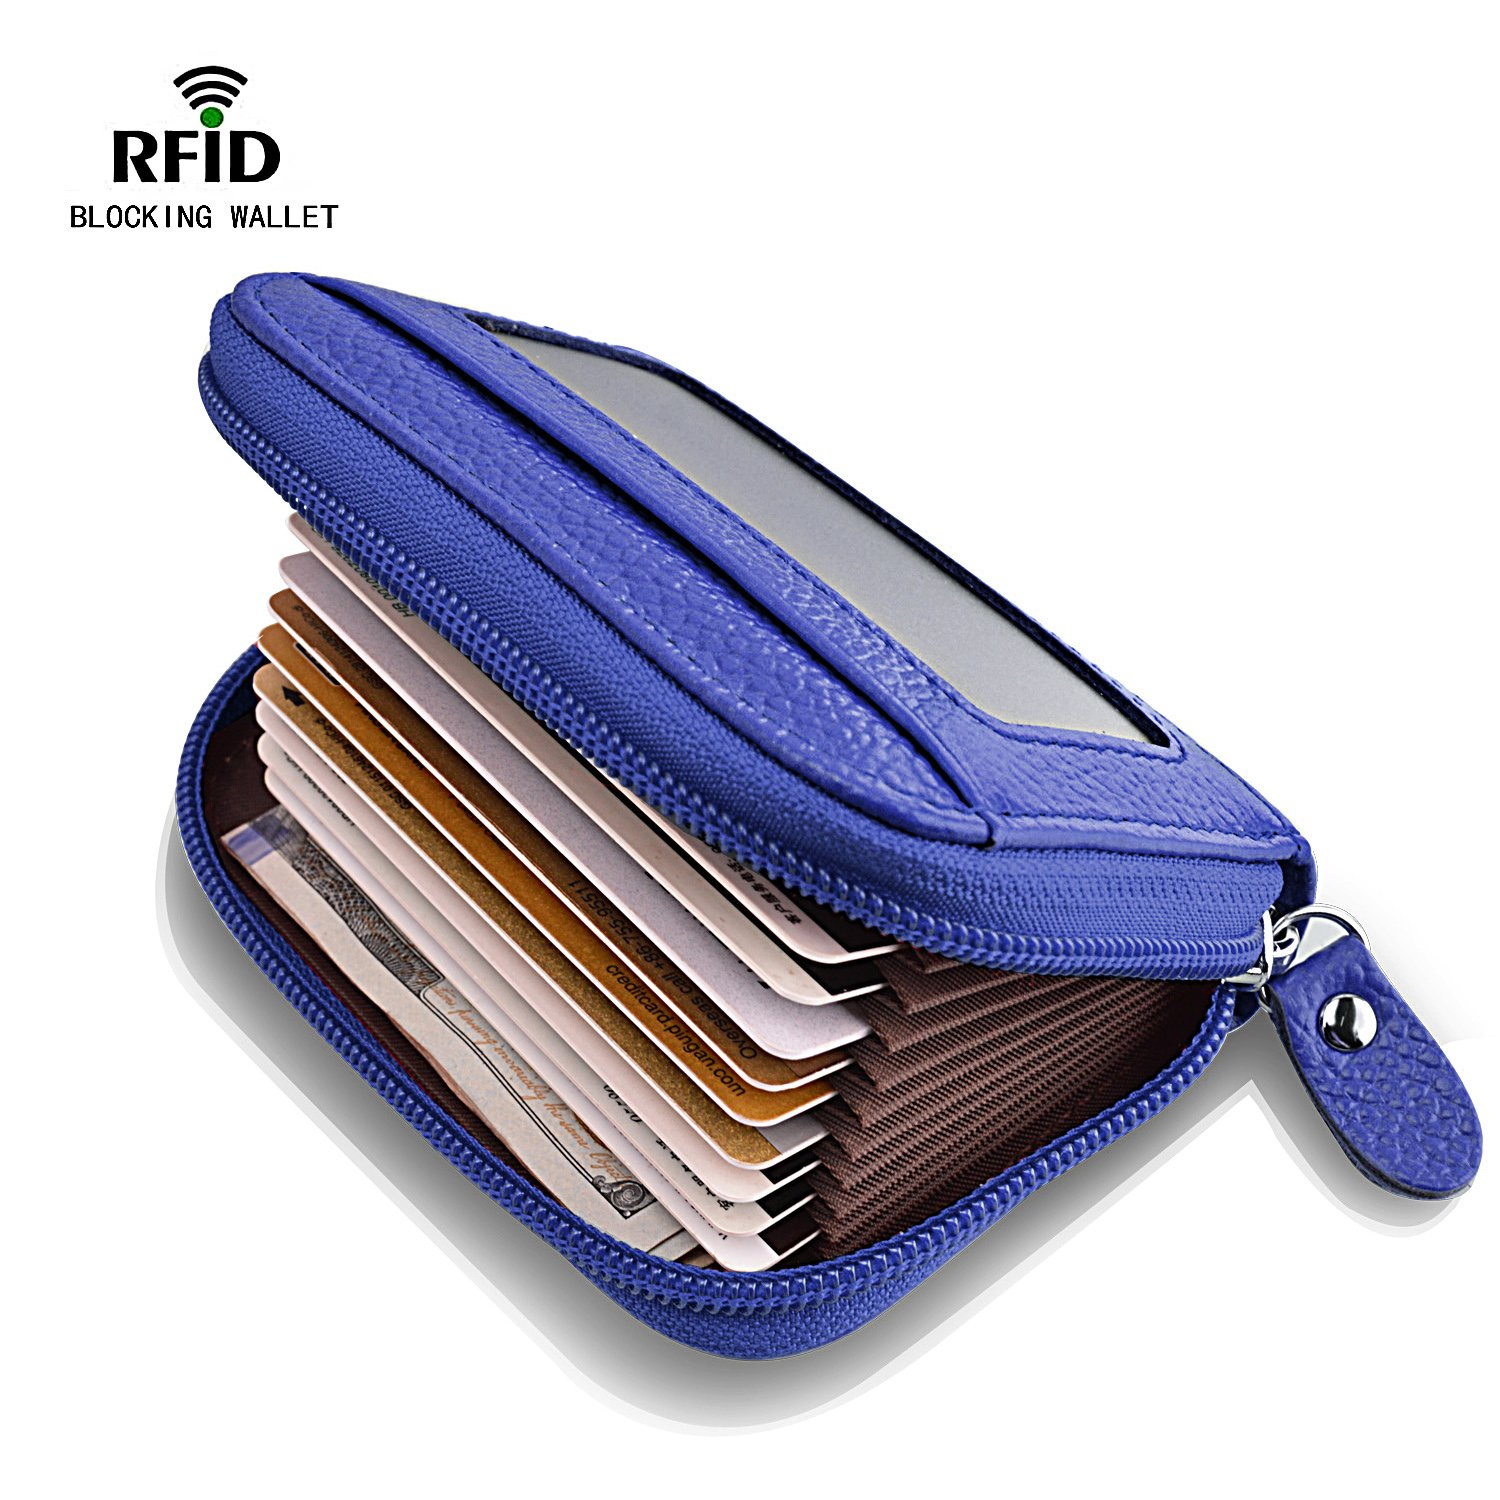 Leather Credit Card Wallet for Men RFID Credit Card Holder Protector ID Wallet Zipper Blue